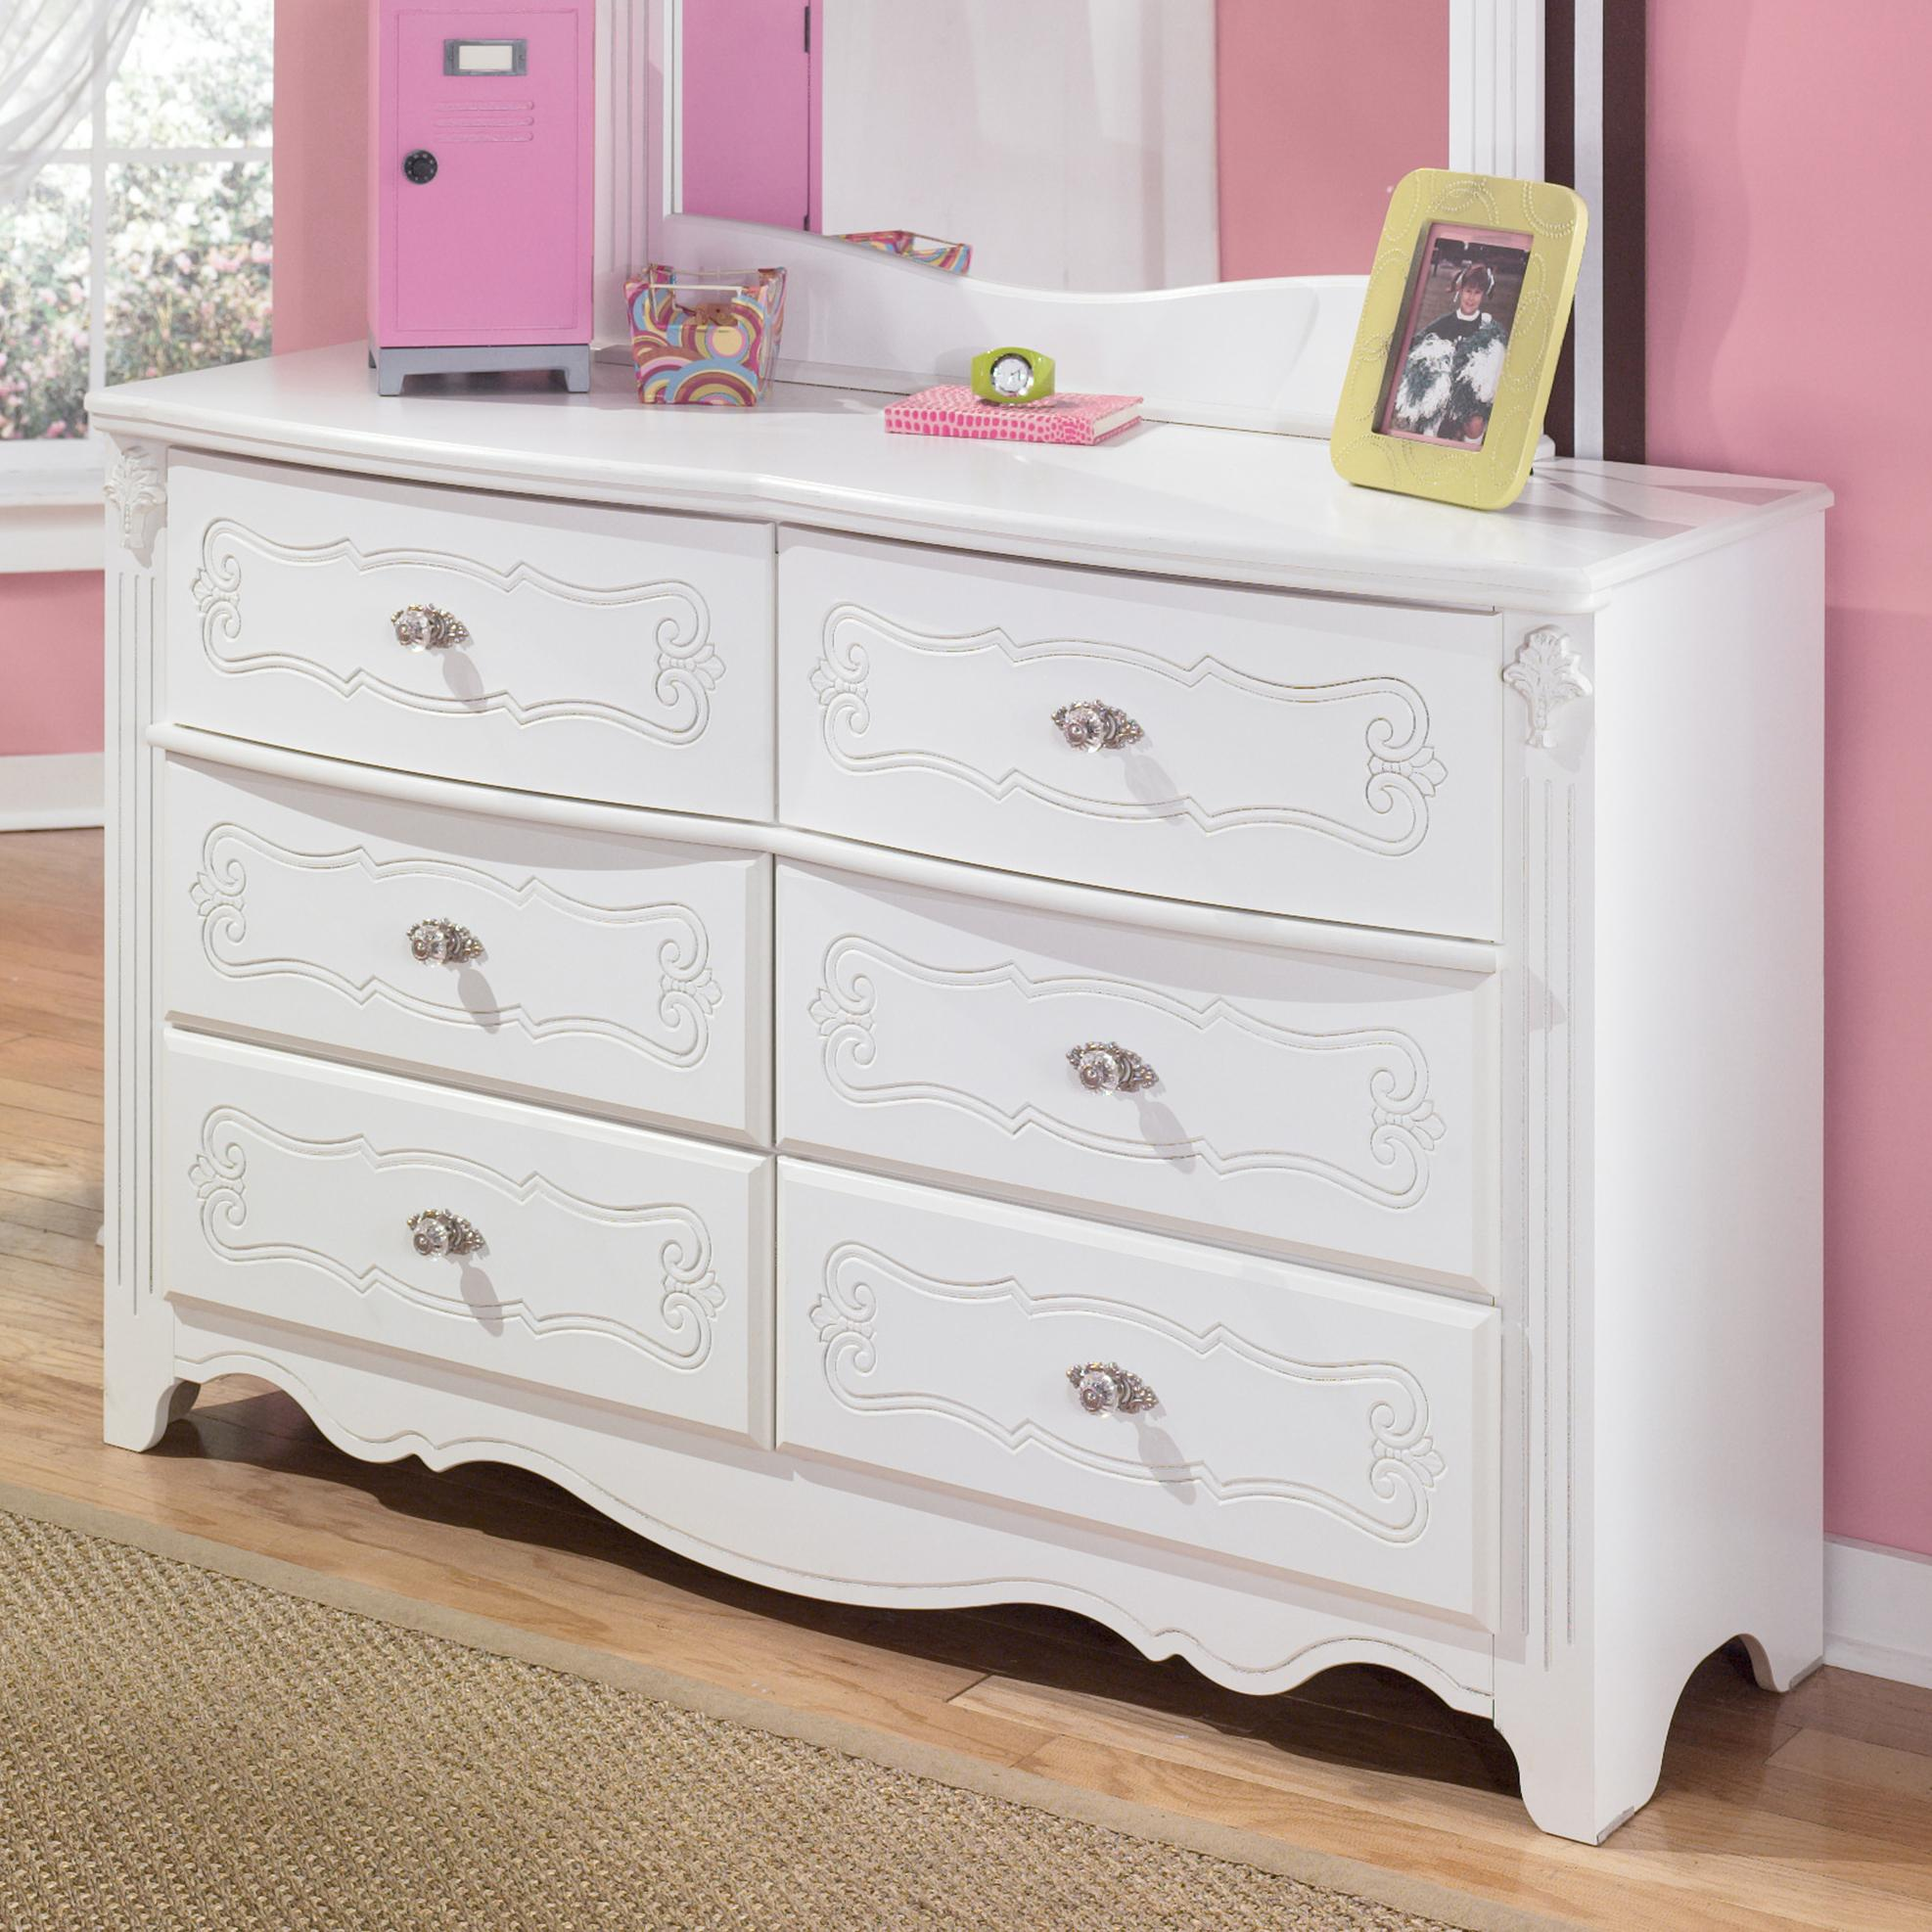 Exquisite Dresser by Signature Design by Ashley at Northeast Factory Direct